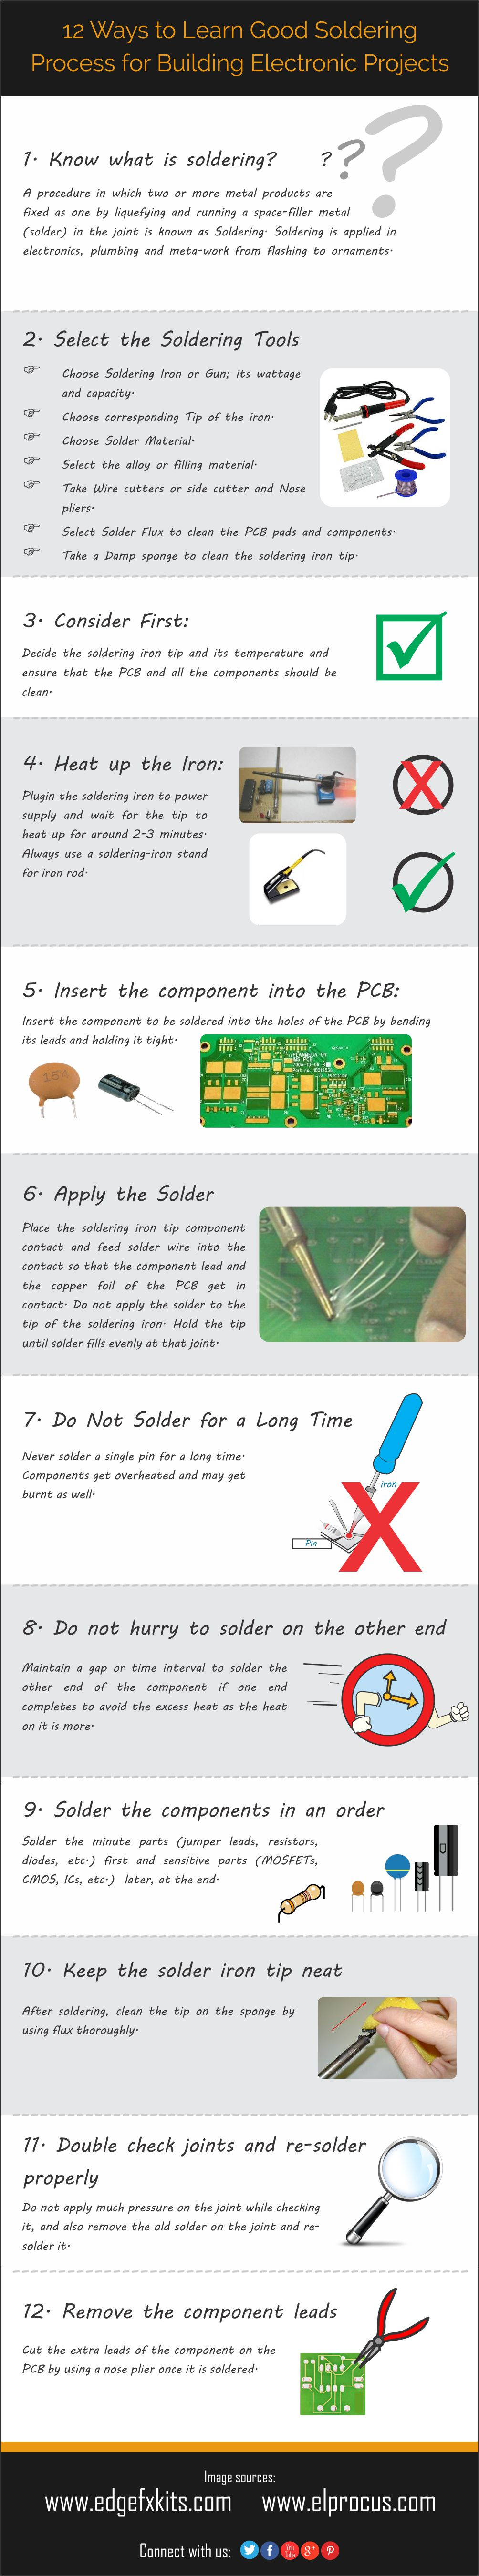 12 Ways to Learn Good Soldering Process for Building Electronic Projects